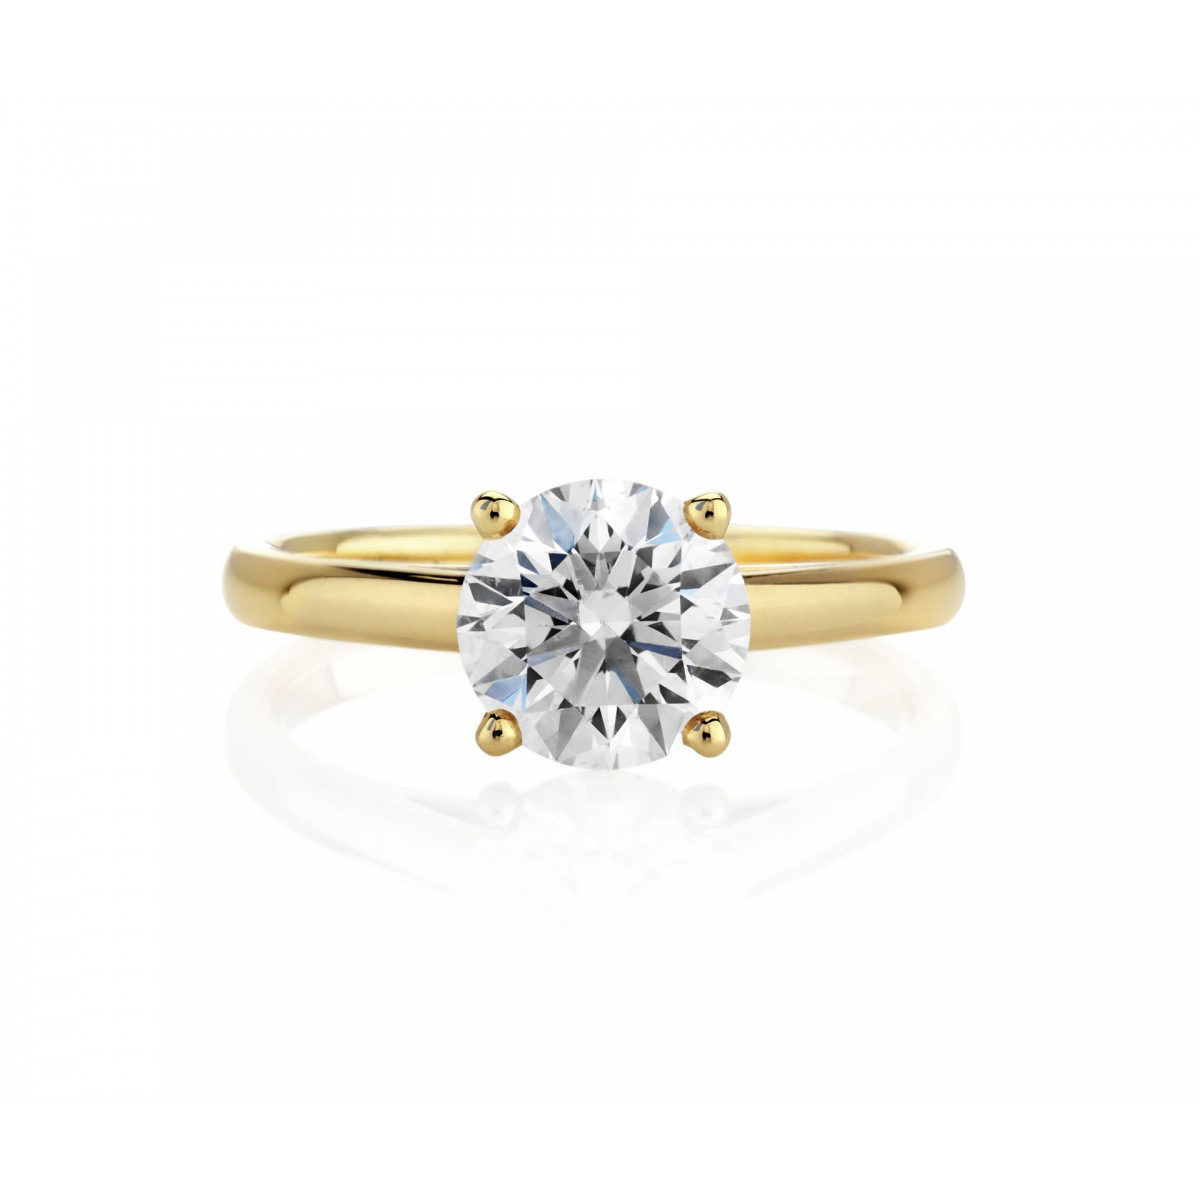 1bb1e7a9abc6 Db classic solitaire ring white diamond set in yellow gold